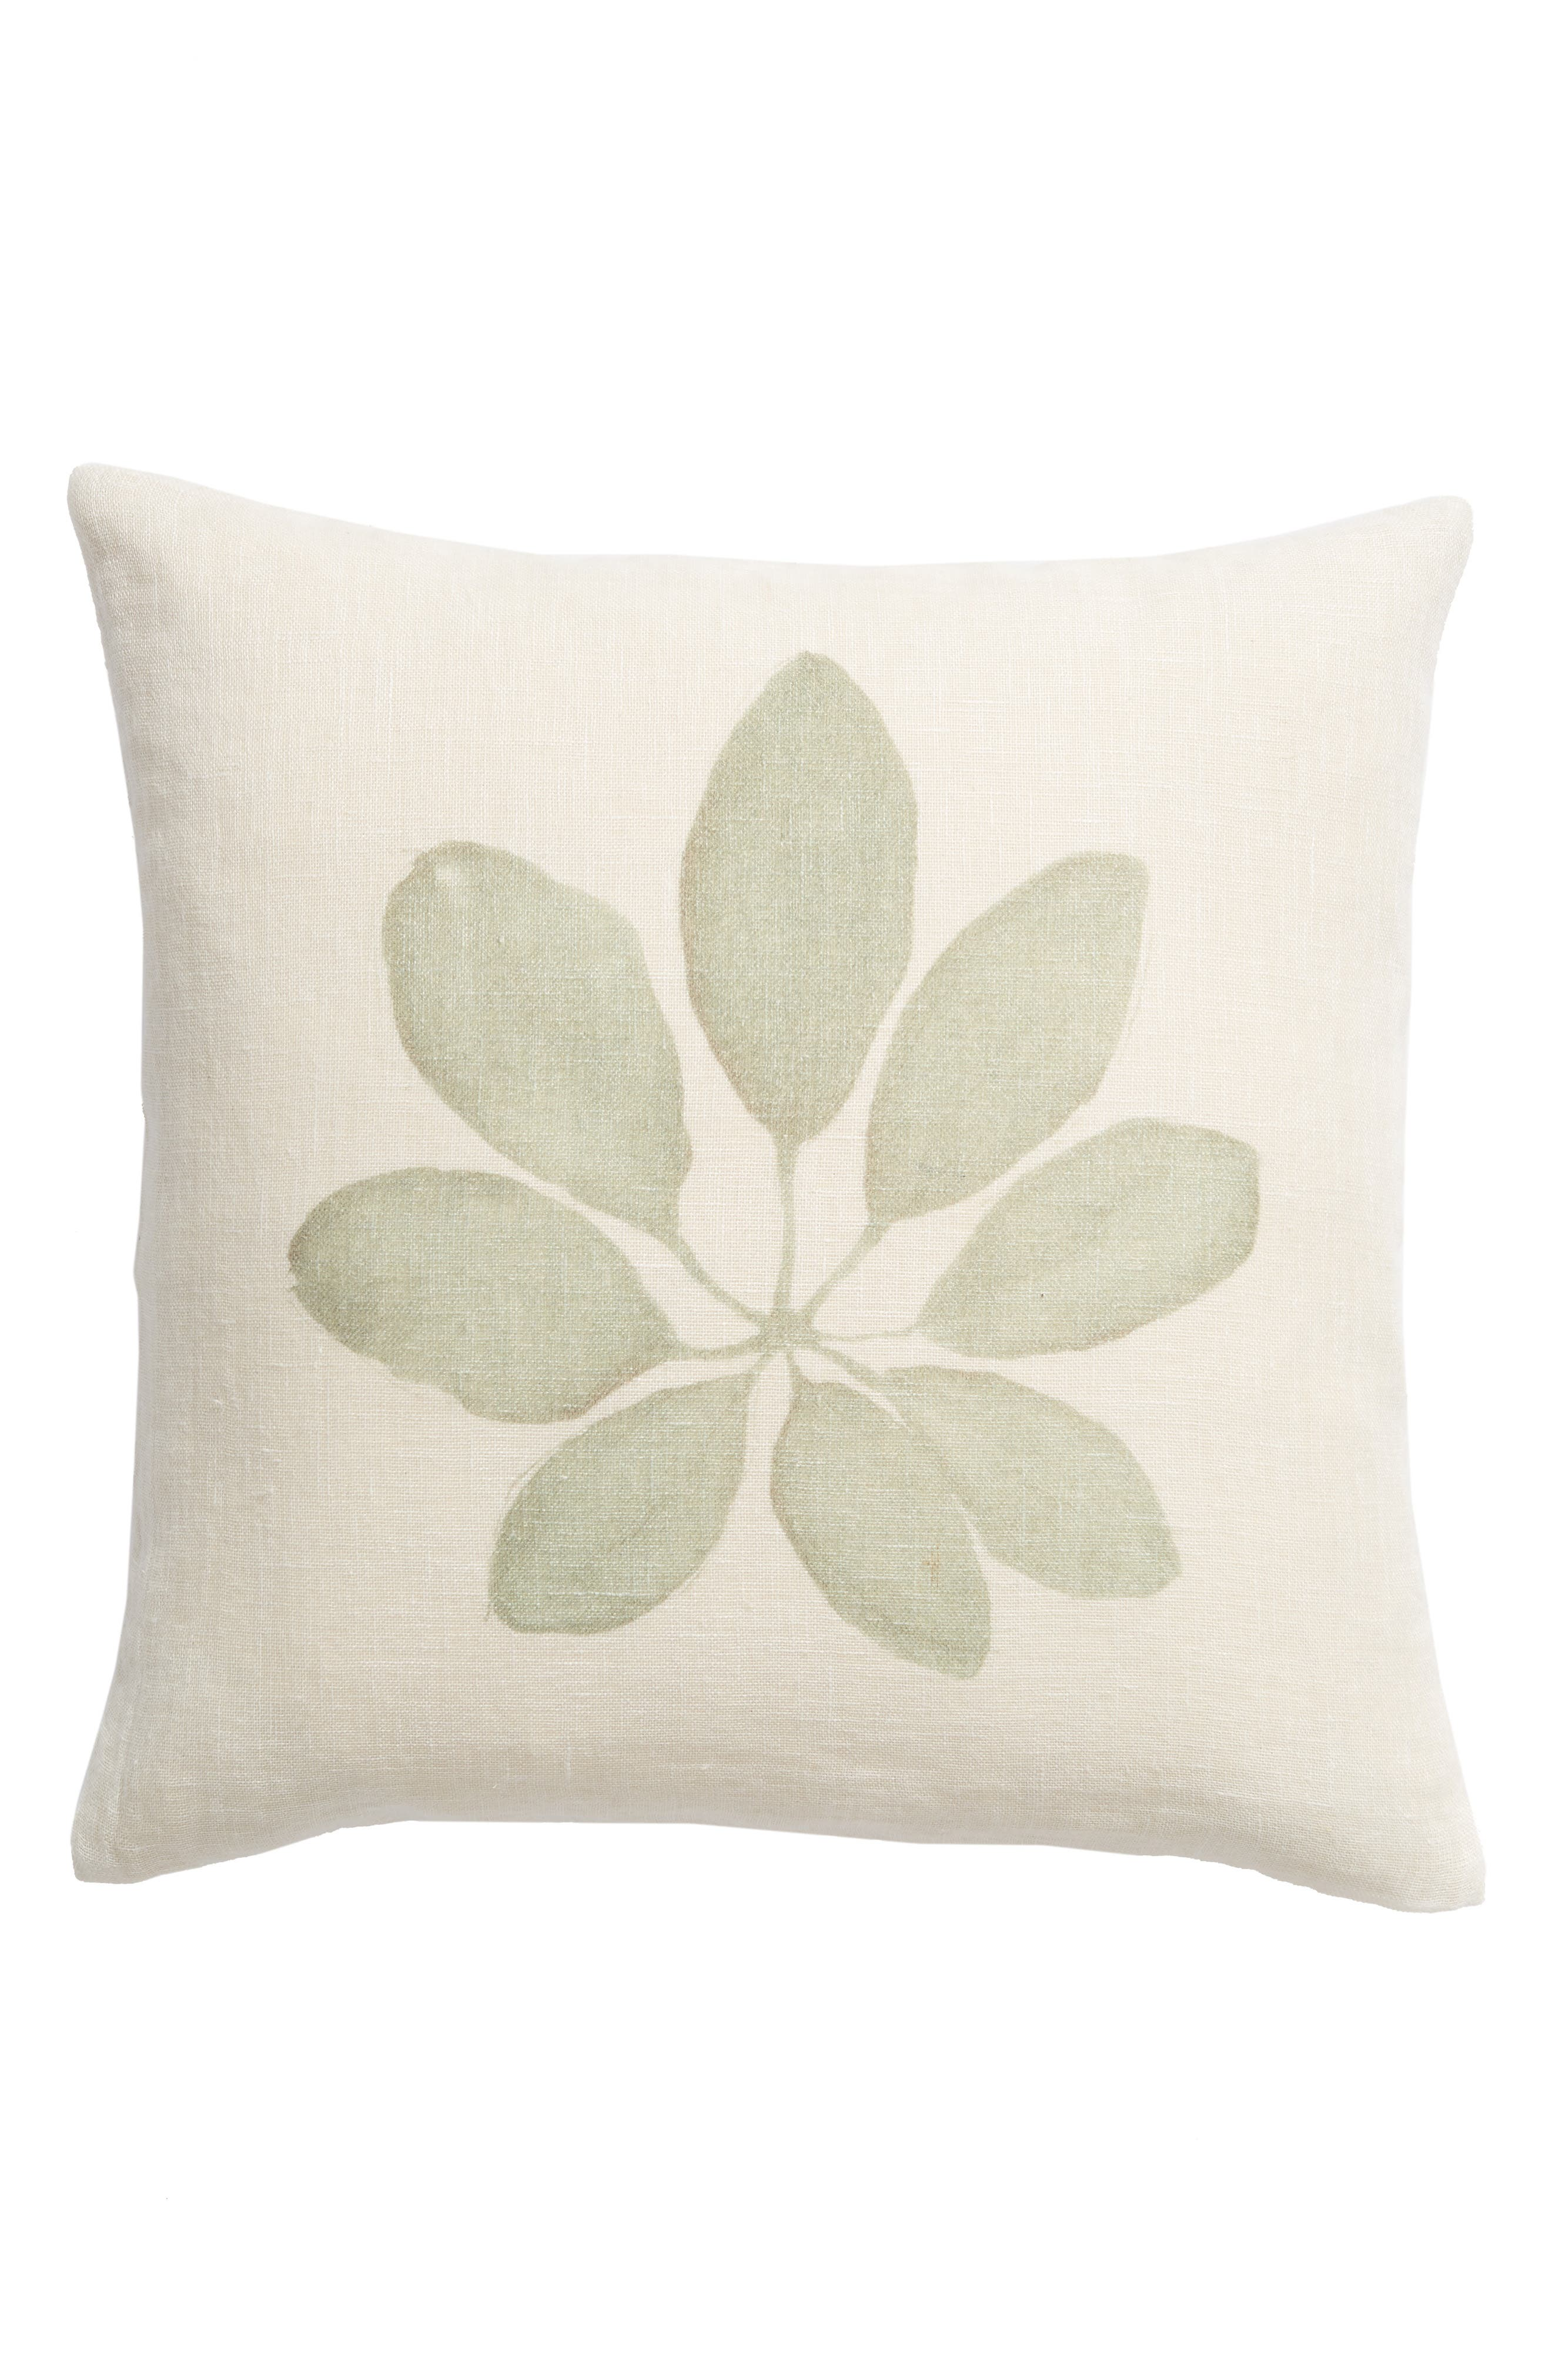 TREASURE & BOND, Leaf Accent Pillow, Main thumbnail 1, color, GREEN SHORE MULTI